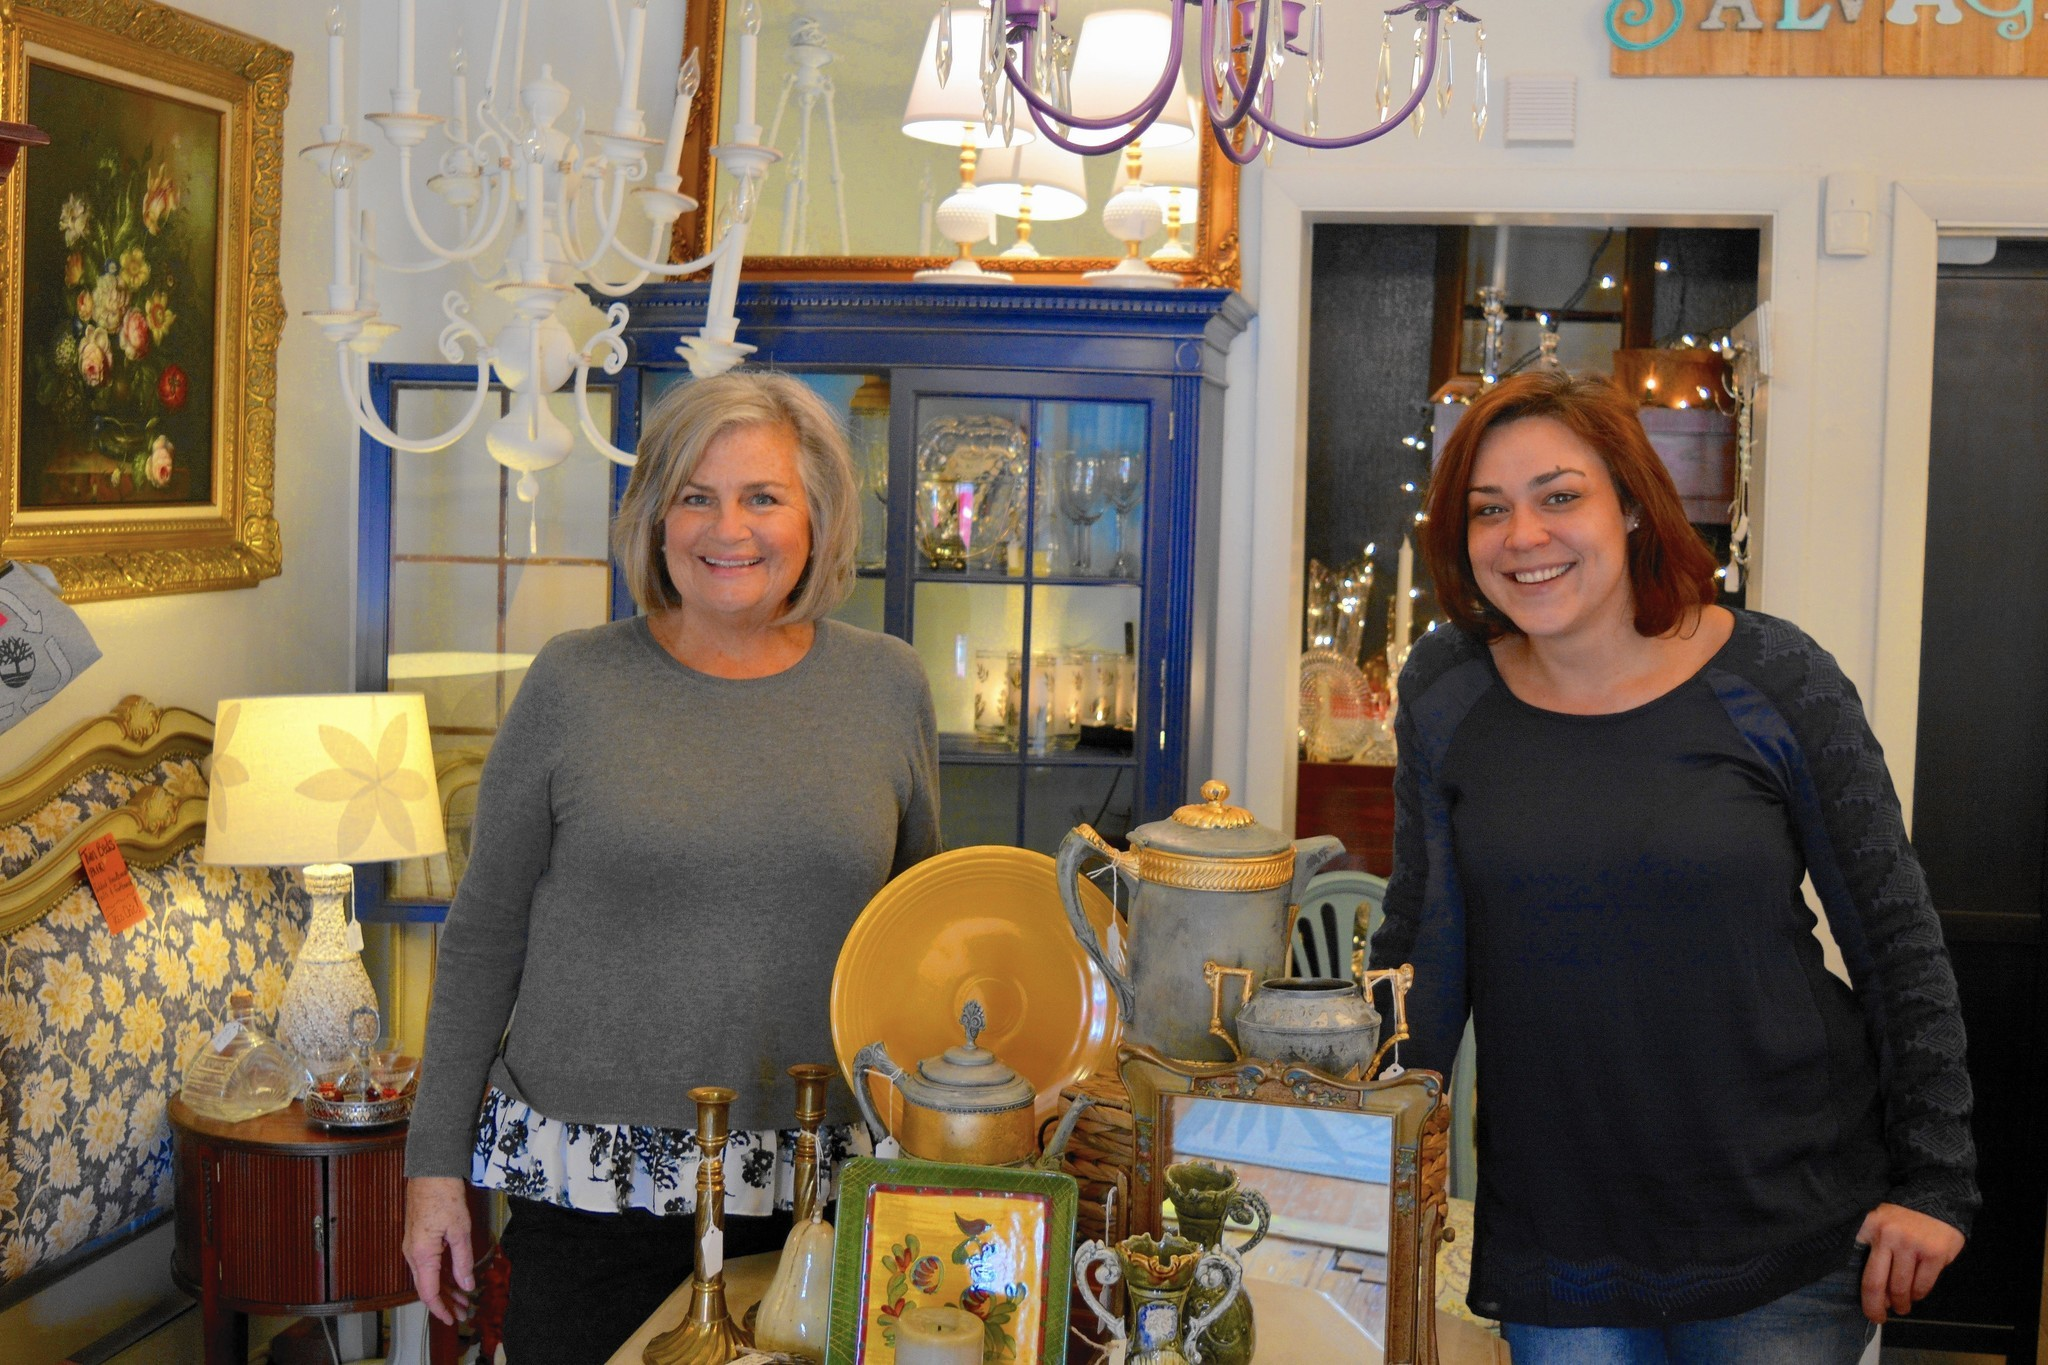 New Arbutus venture brings 'character' to old furnishings ...